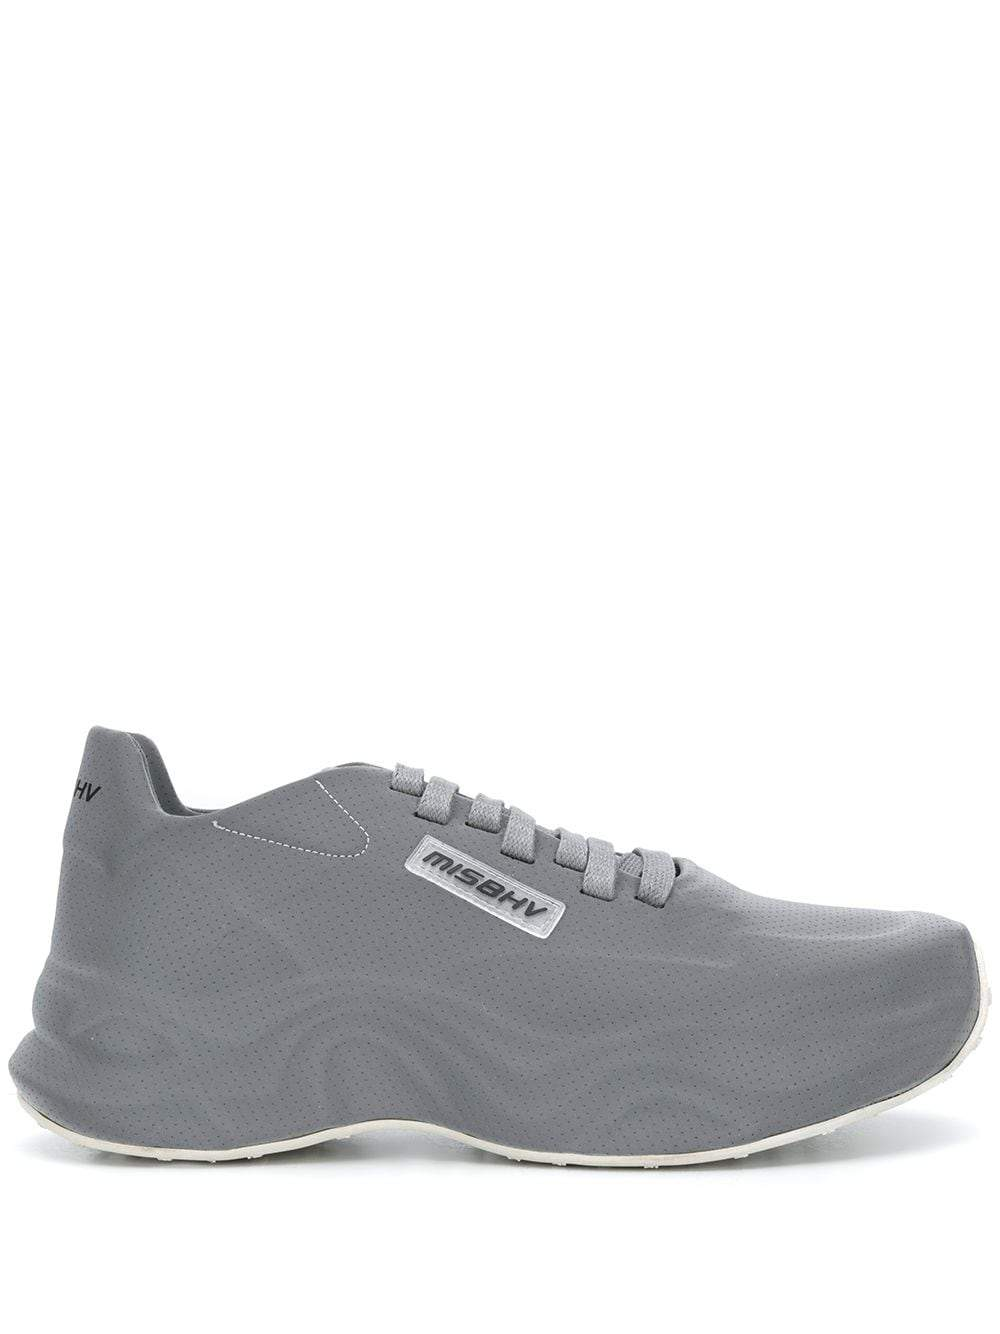 MISBHV moon low-top sneakers